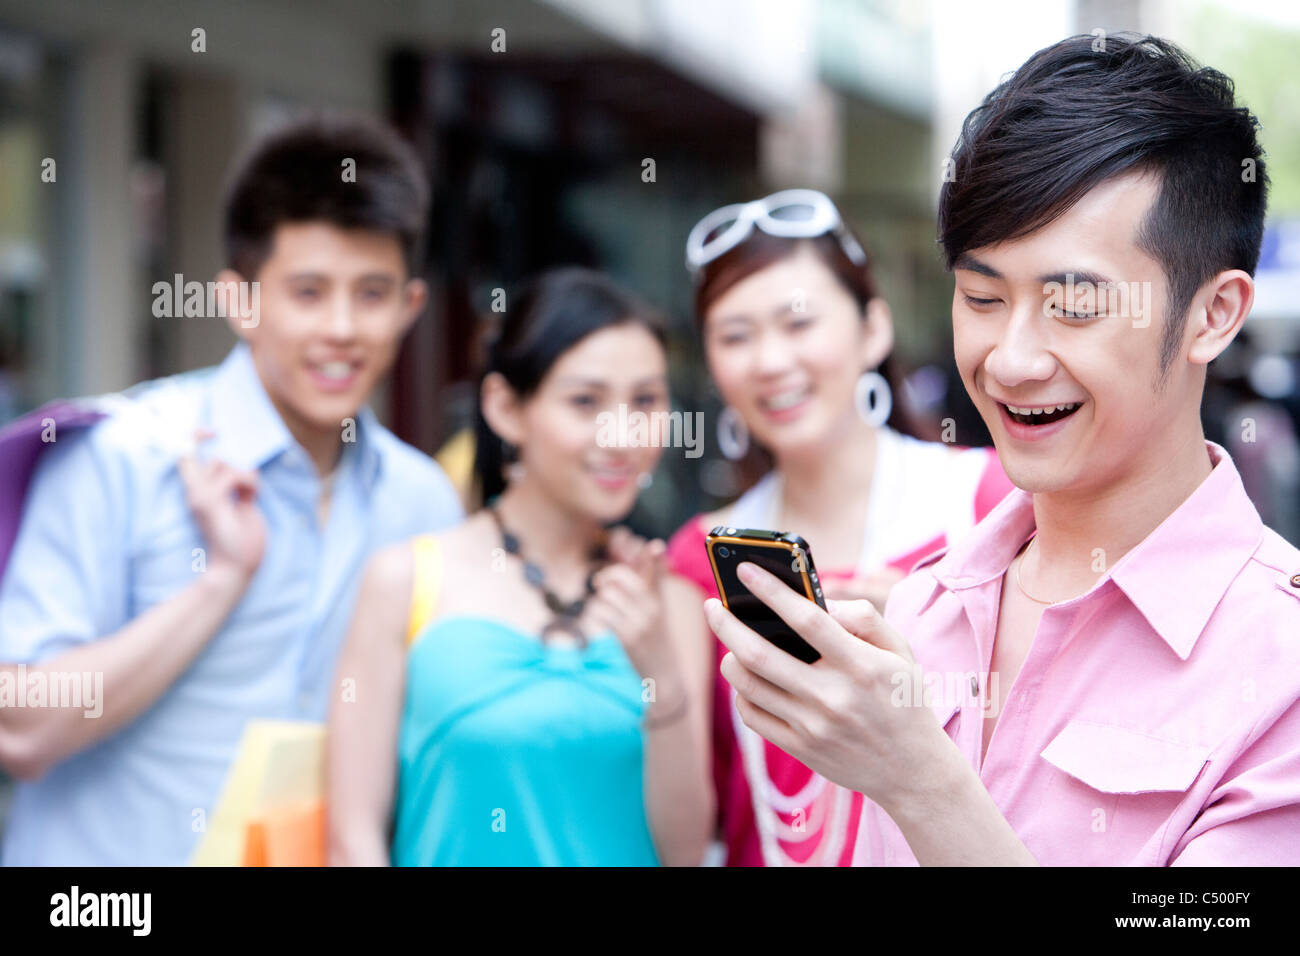 Young Man Using Phone In Front of Friends - Stock Image